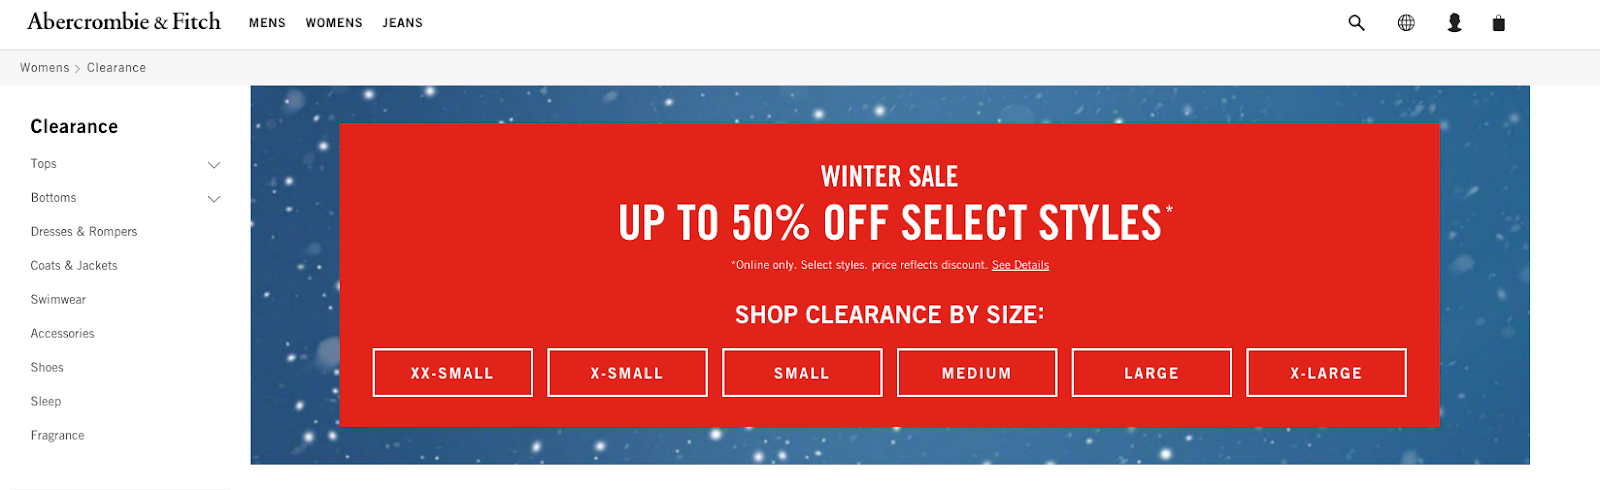 Abercrombie&Fitch Shop Clearance by Size Feature